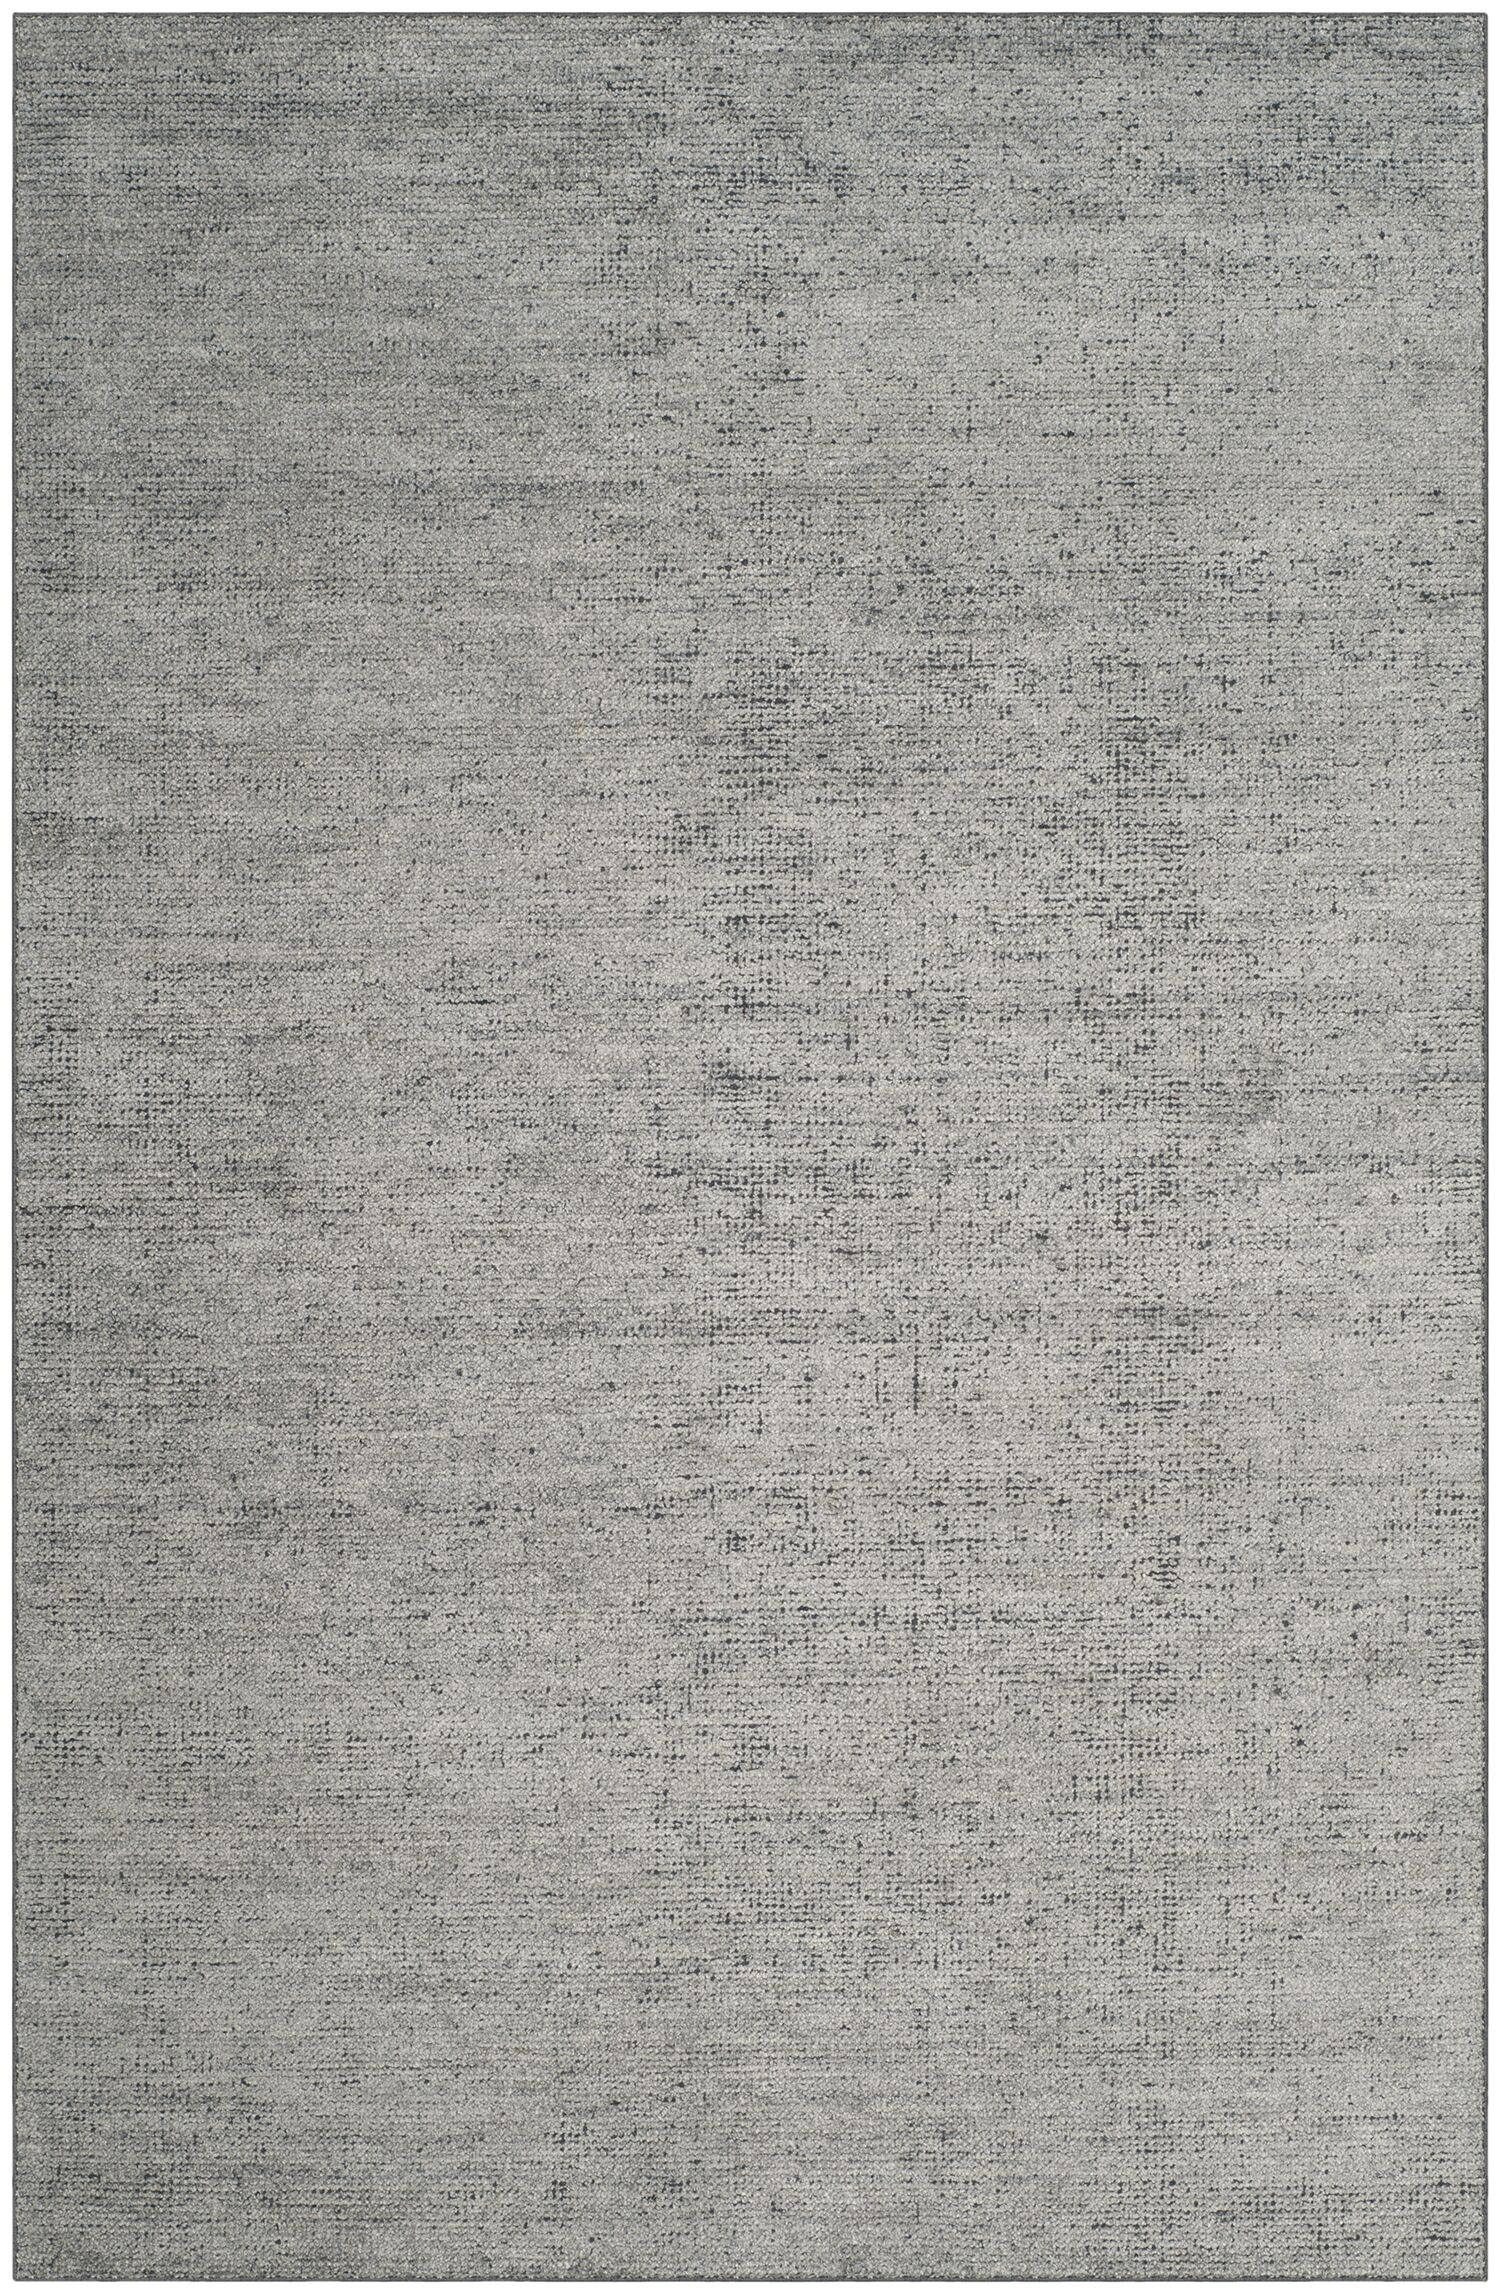 McArthur Hand-Knotted Rectangle Gray Area Rug Rug Size: Rectangle 5' x 8'